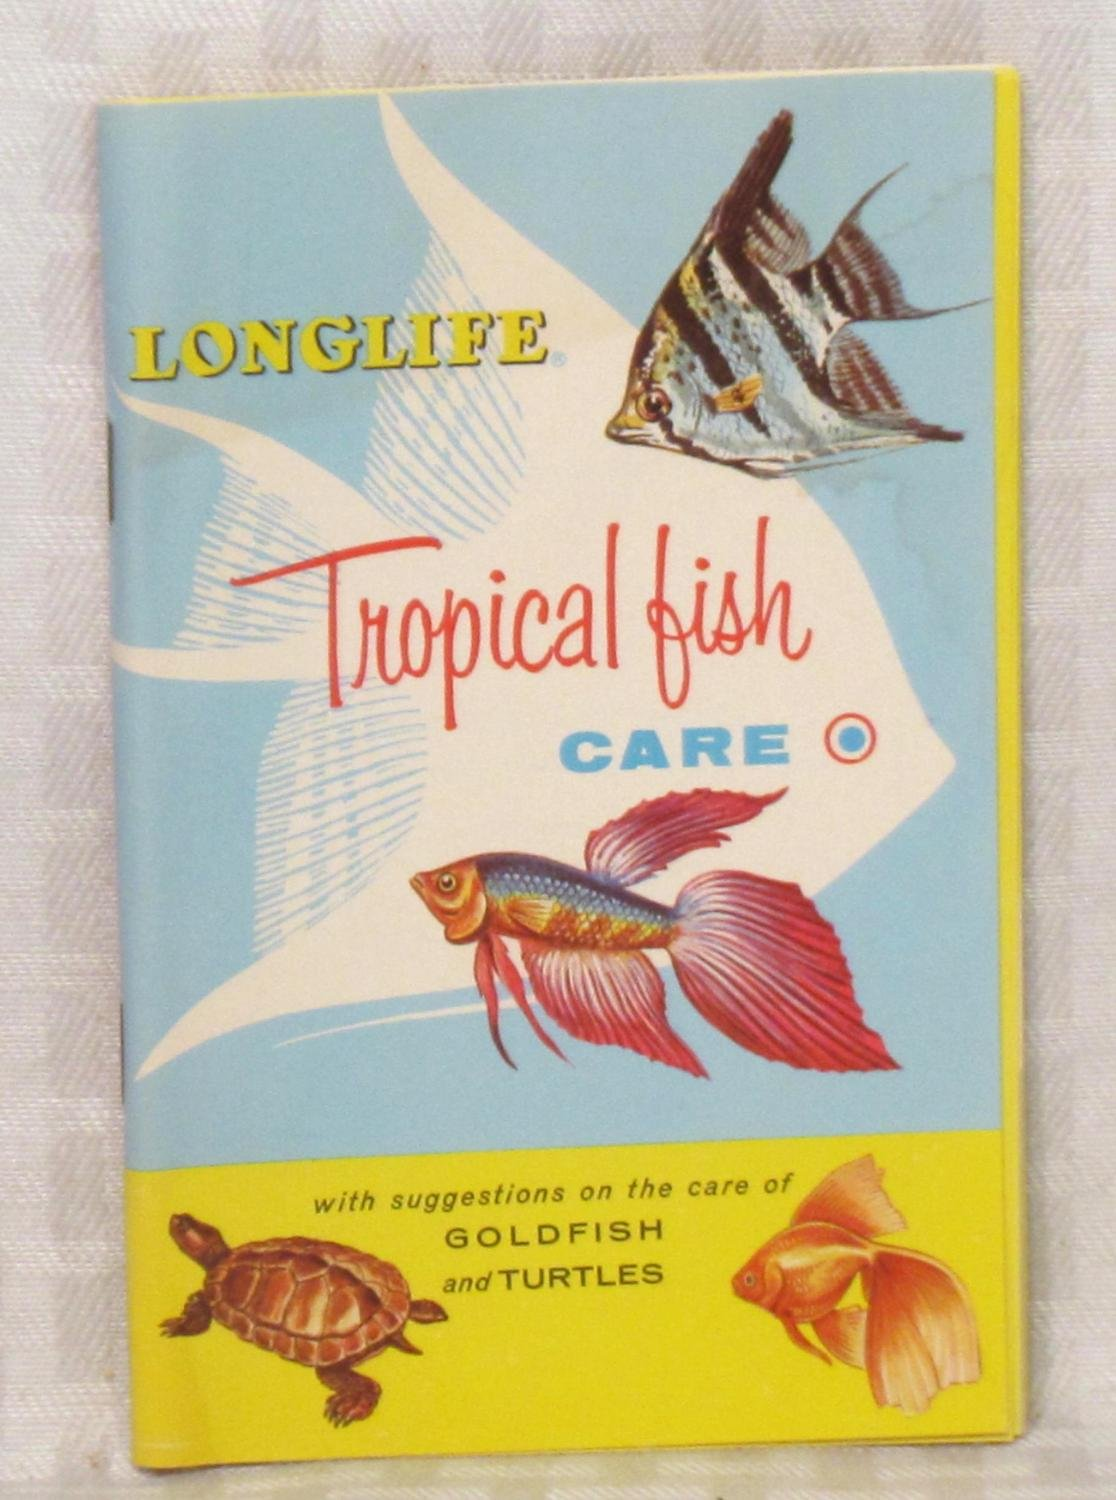 Tropical Fish Care - with suggestions on the care of Goldfish and Turtles